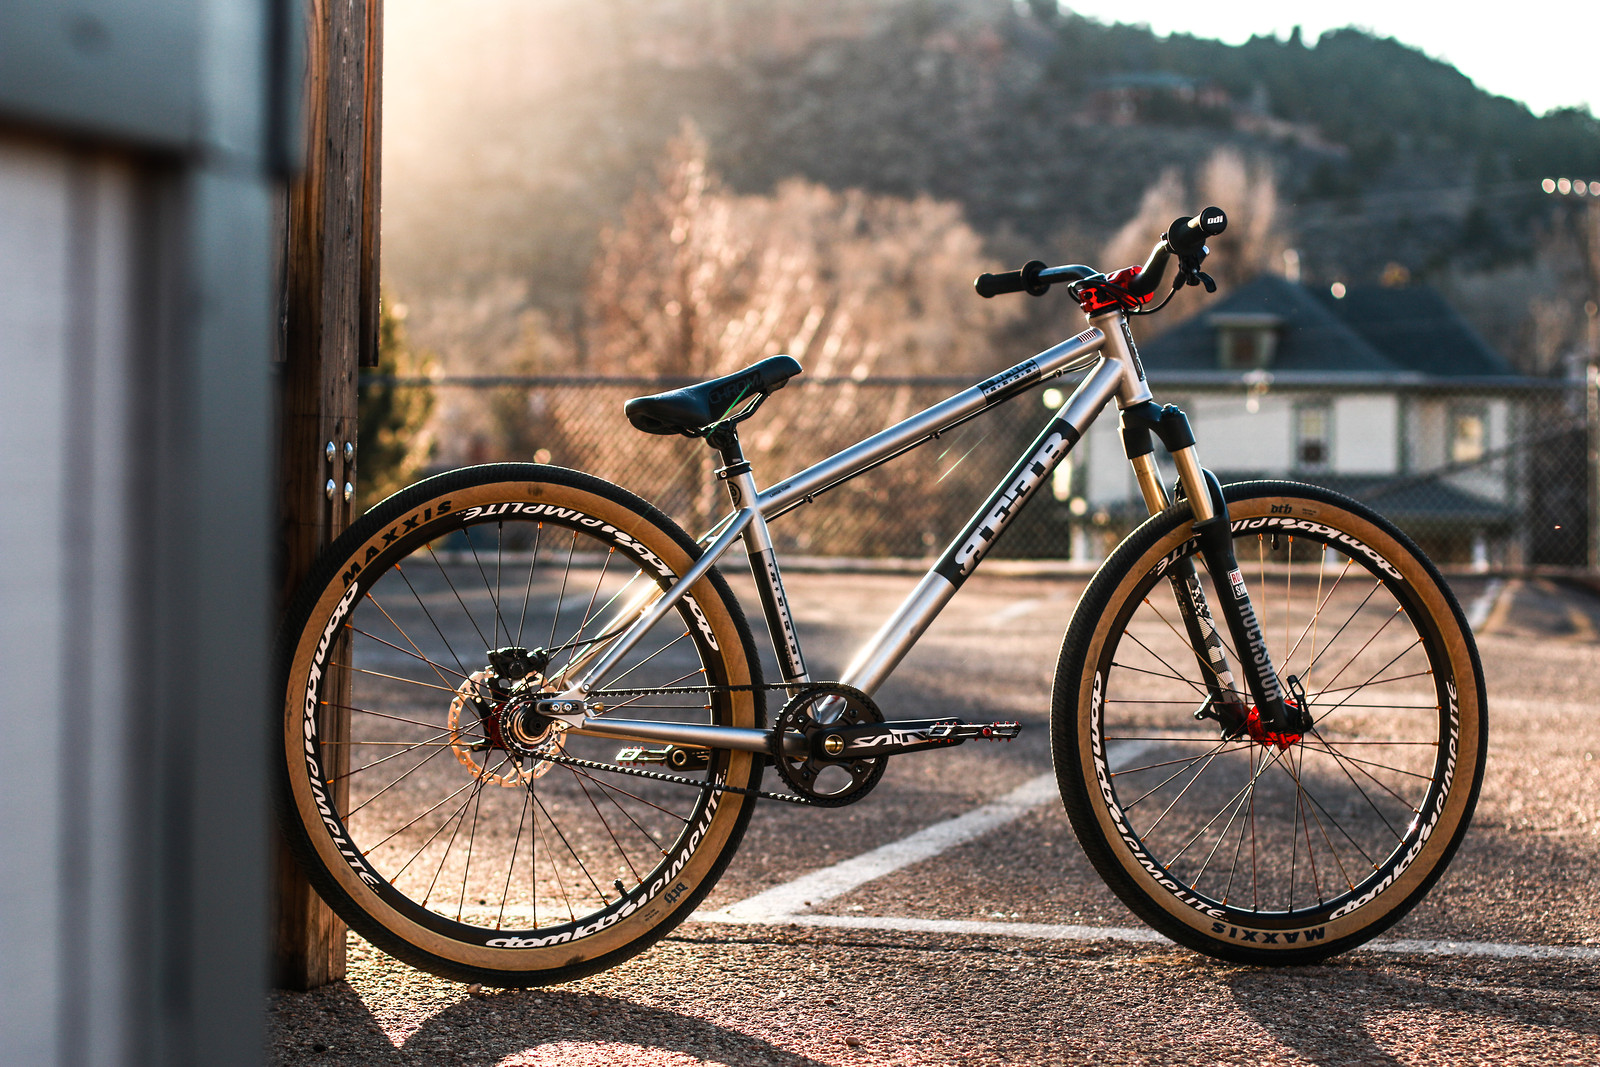 The REEB Cycles Destroyer DJ